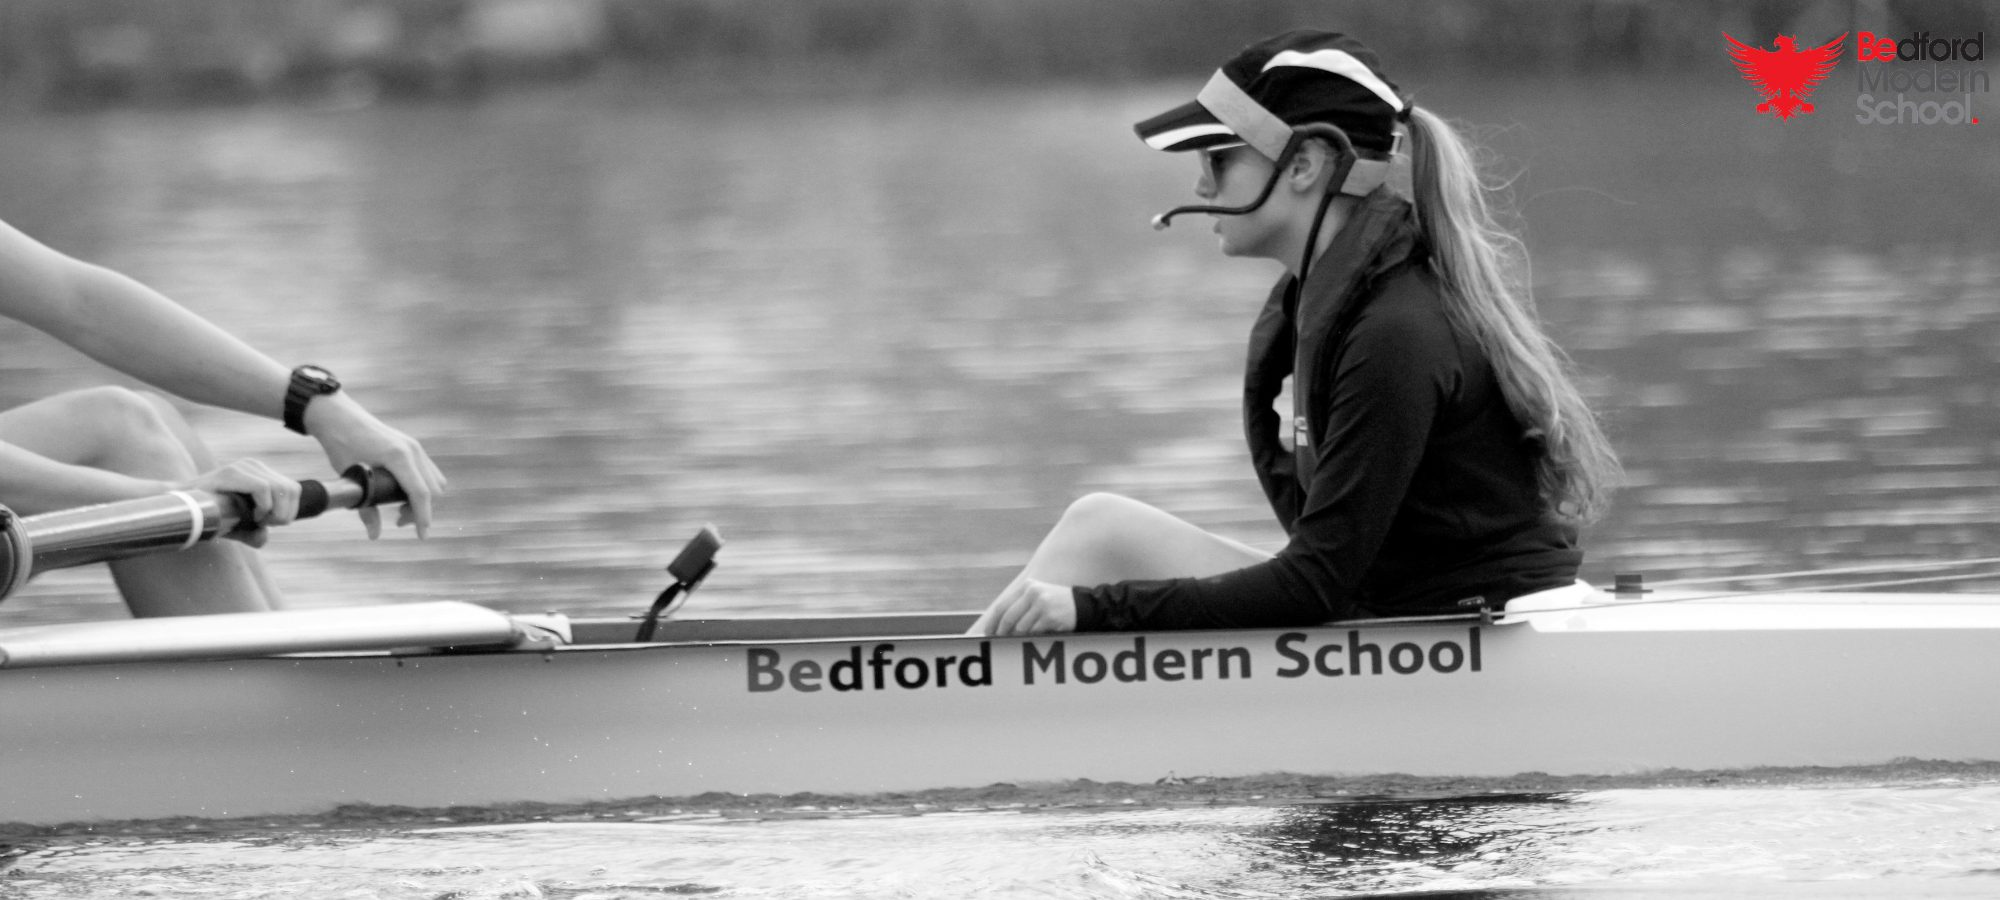 Bedford Modern School Boat Club